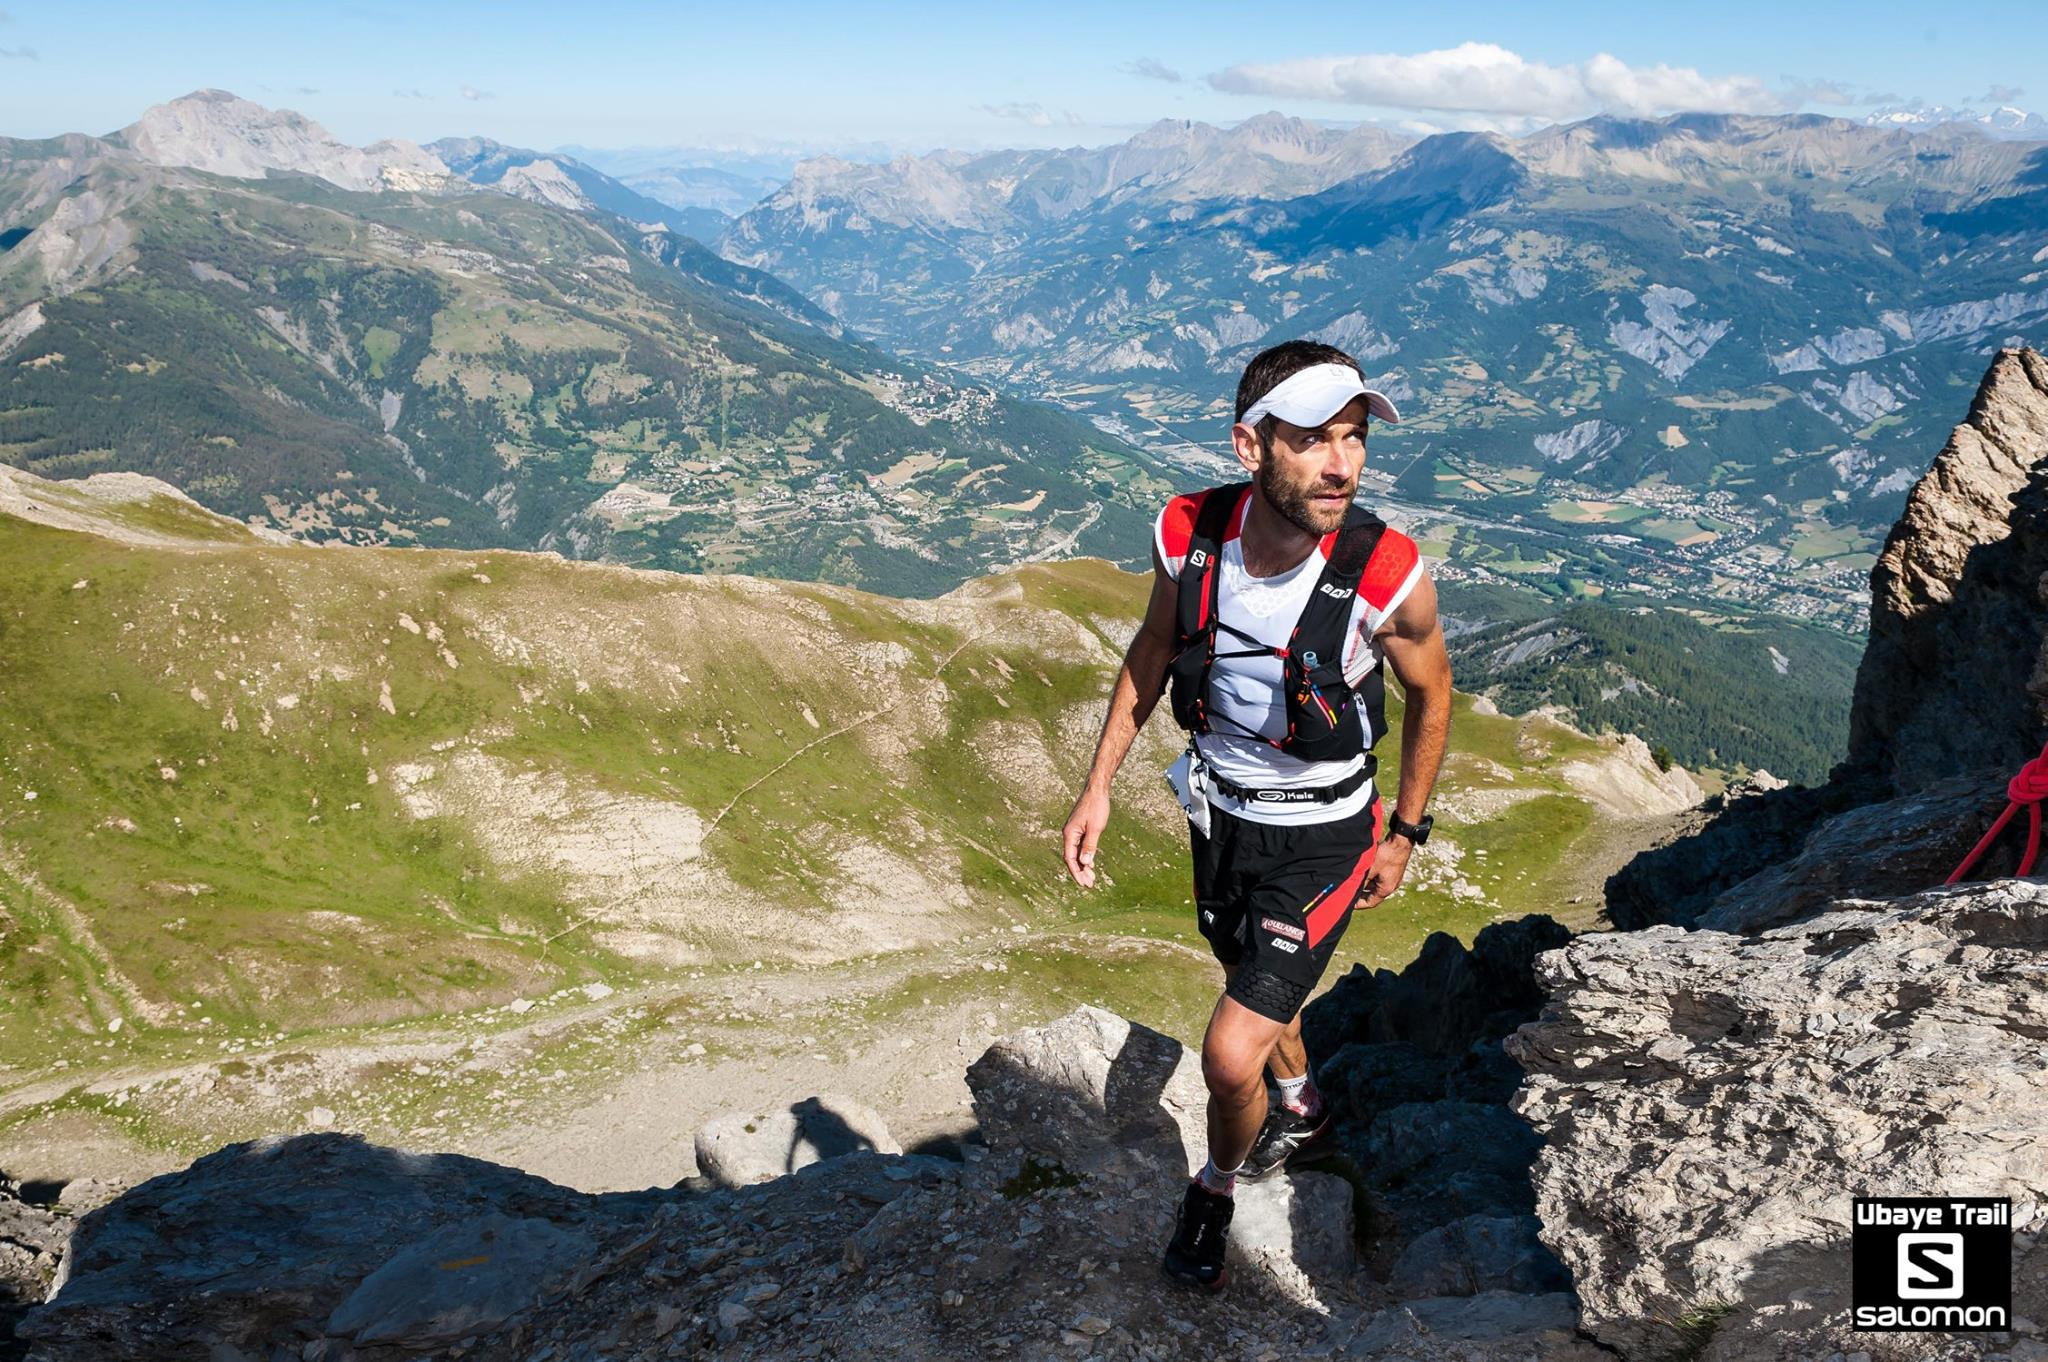 13987468 1031226976926116 5362332704514094693 o - NATIONAL : RESULTATS ET VIDEO DE L'UBAYE TRAIL SALOMON